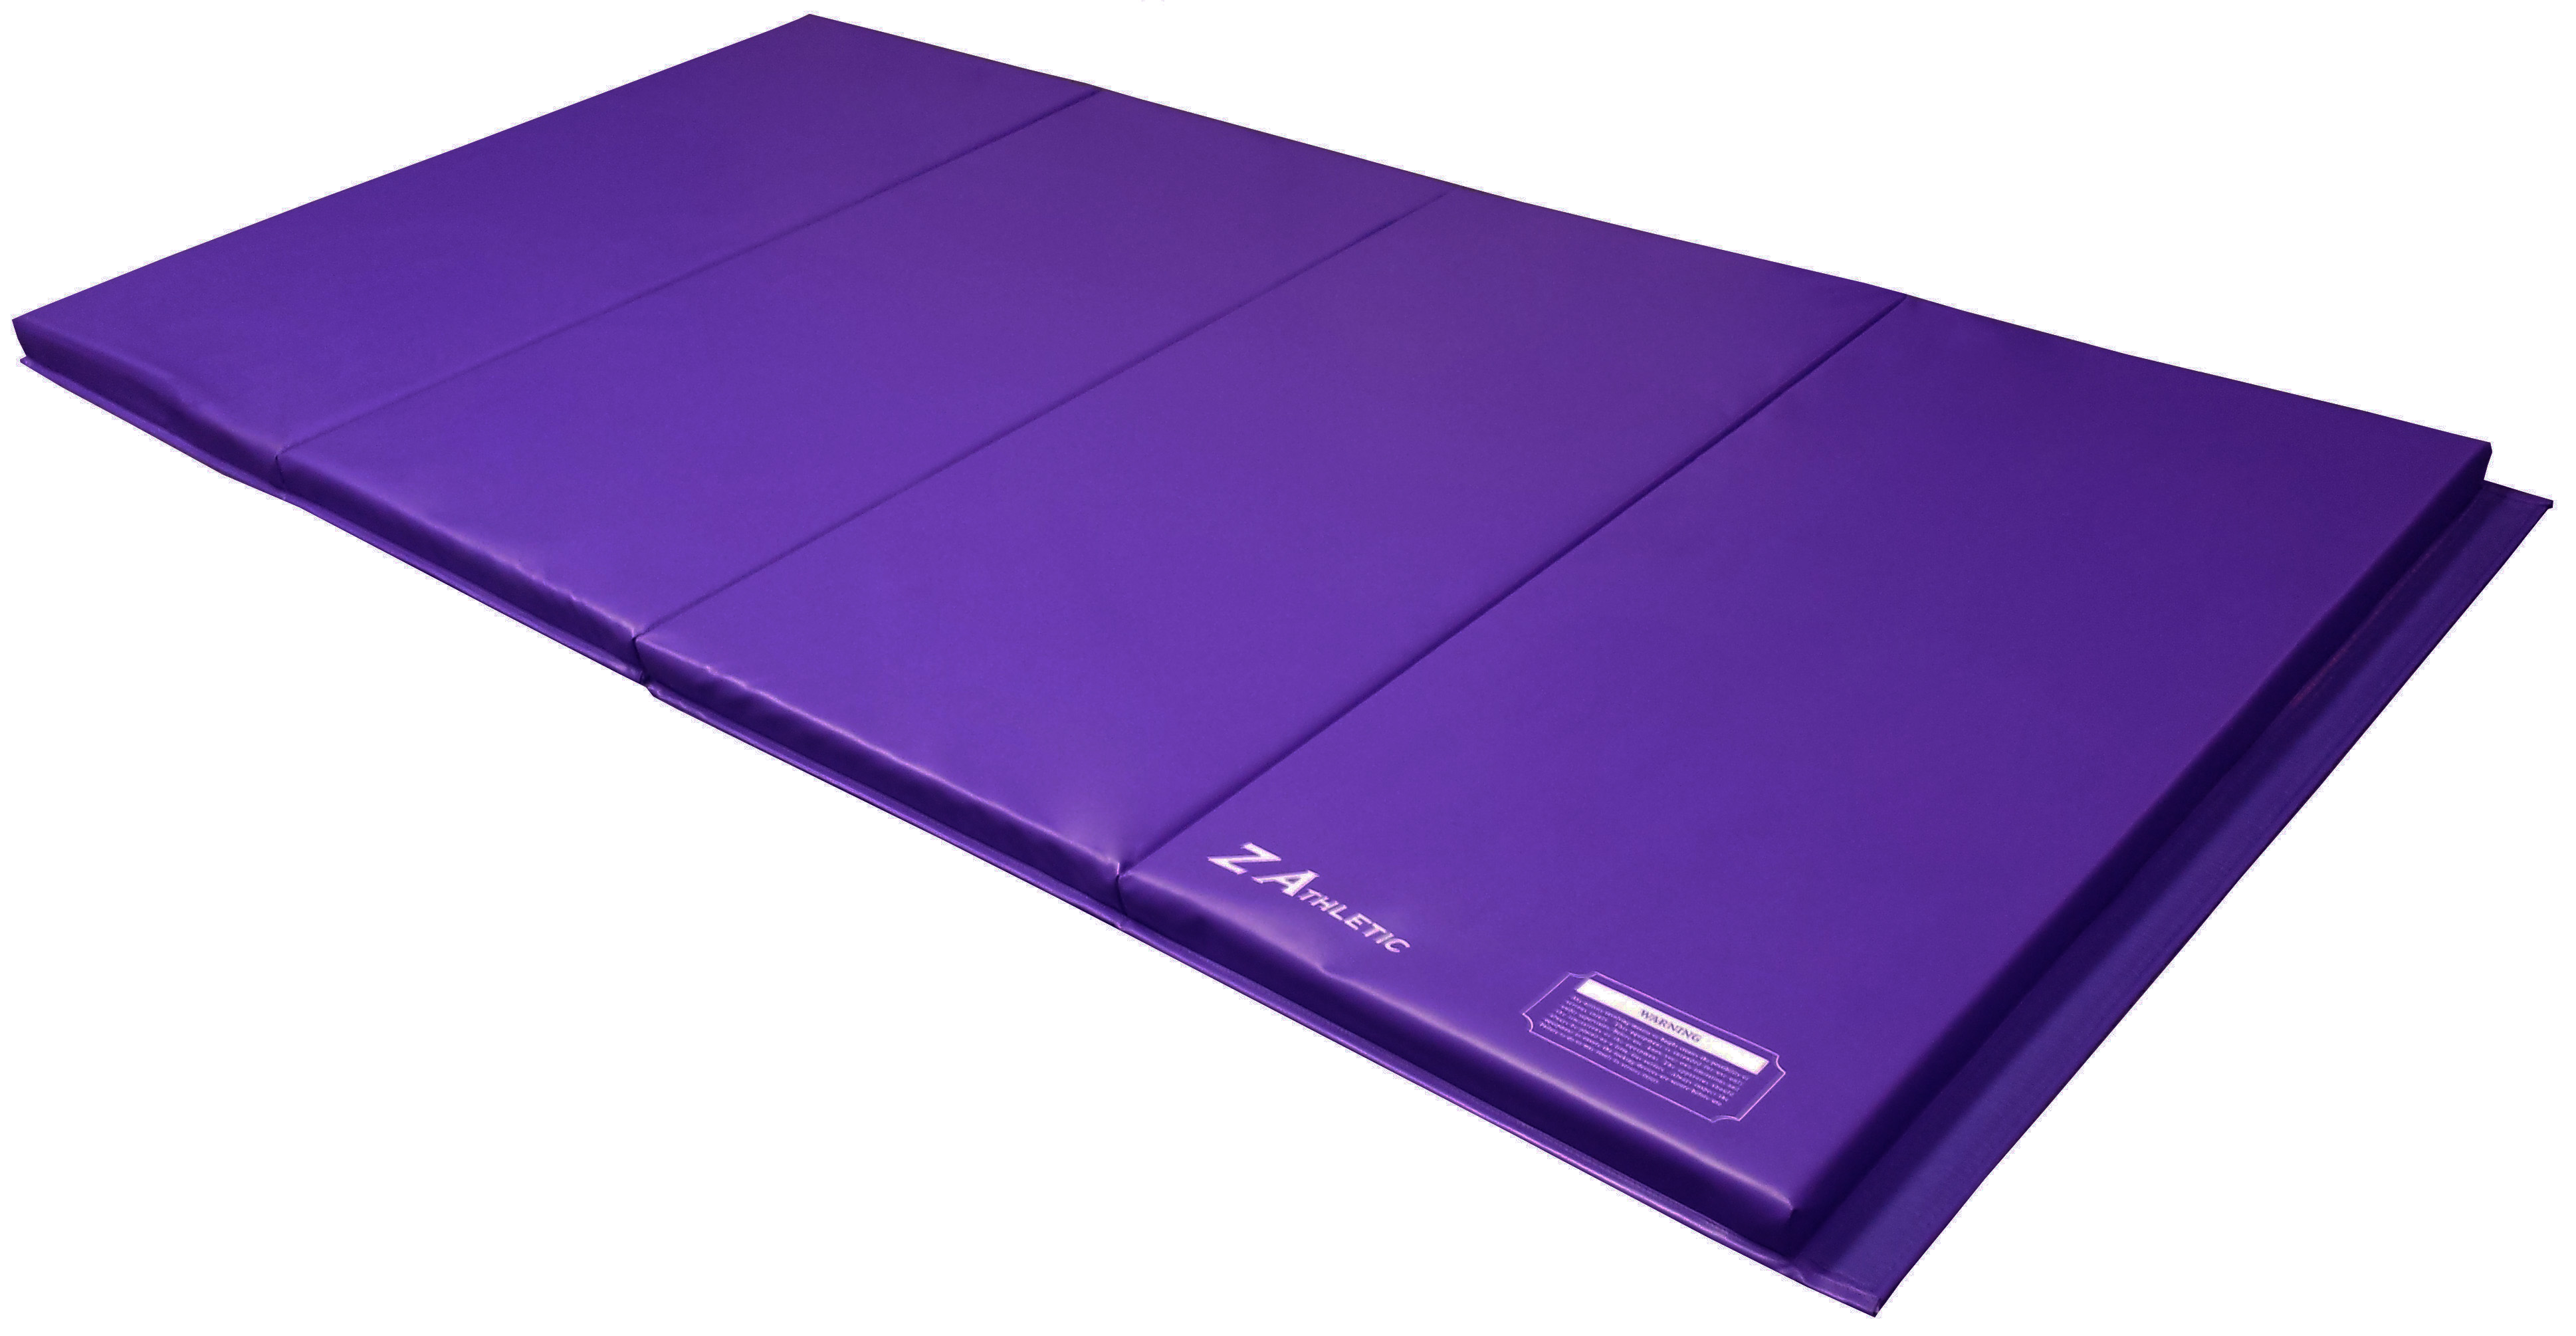 mats mat collections combo folded incline x equipment athletic ship gymnastics pink quick with and folding ak purple